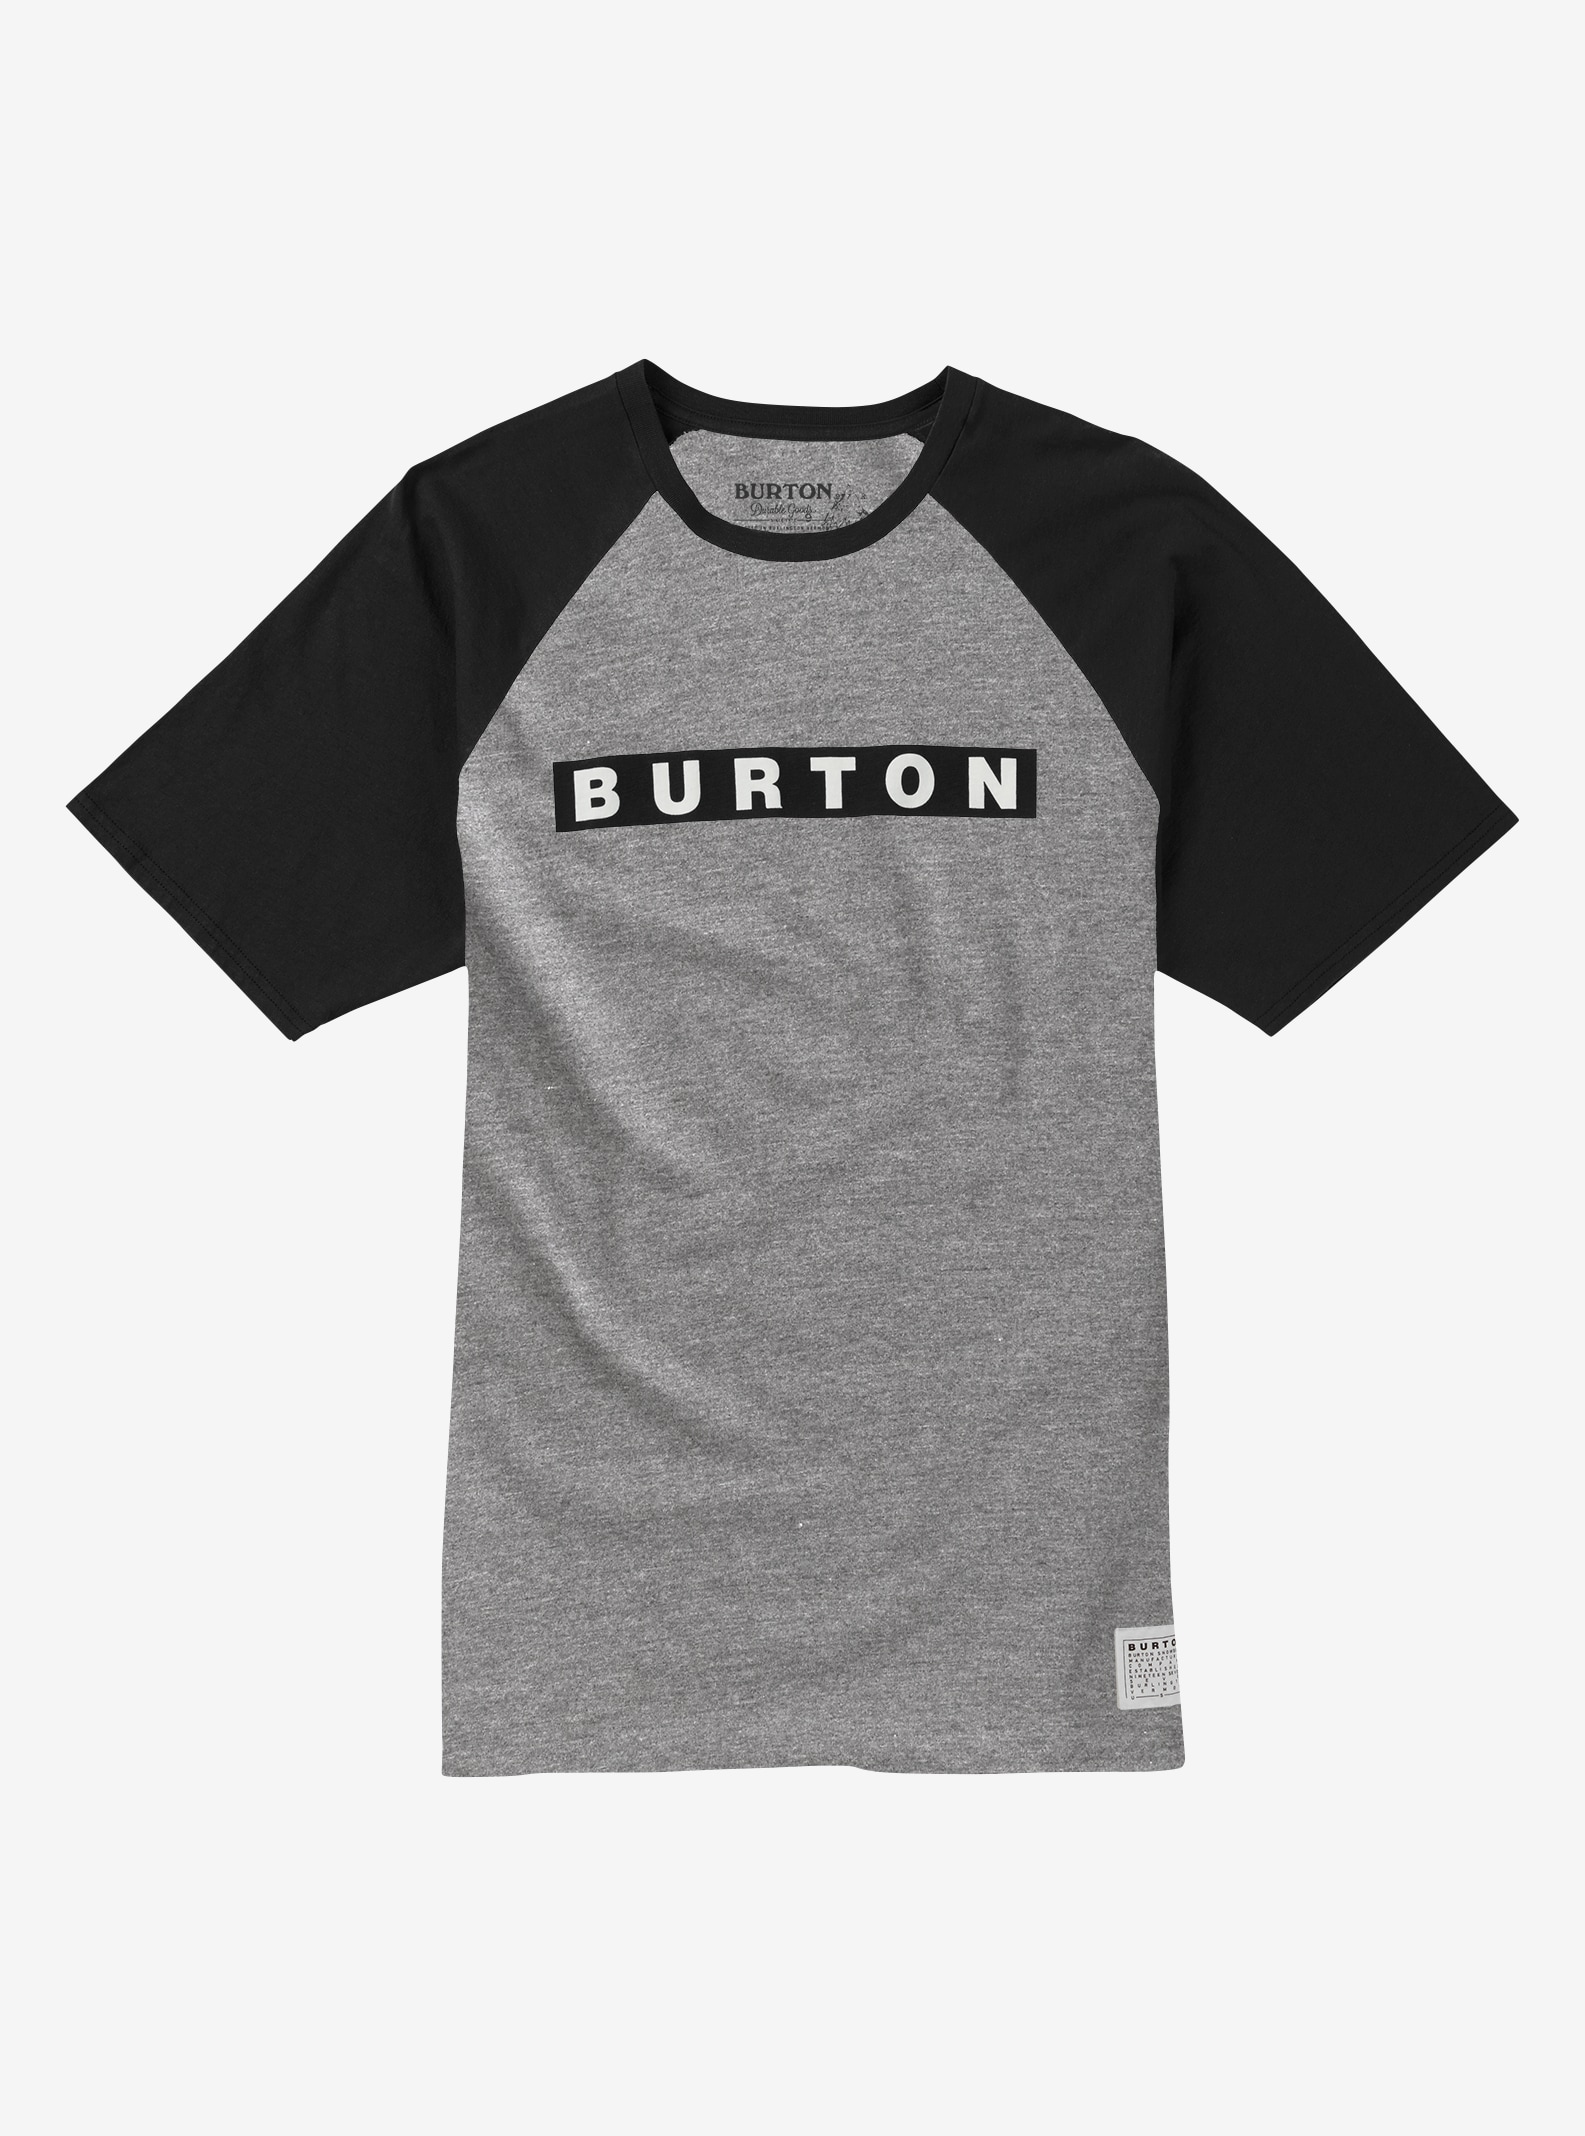 Men's Burton Vault Slim Fit Short Sleeve T Shirt shown in Gray Heather